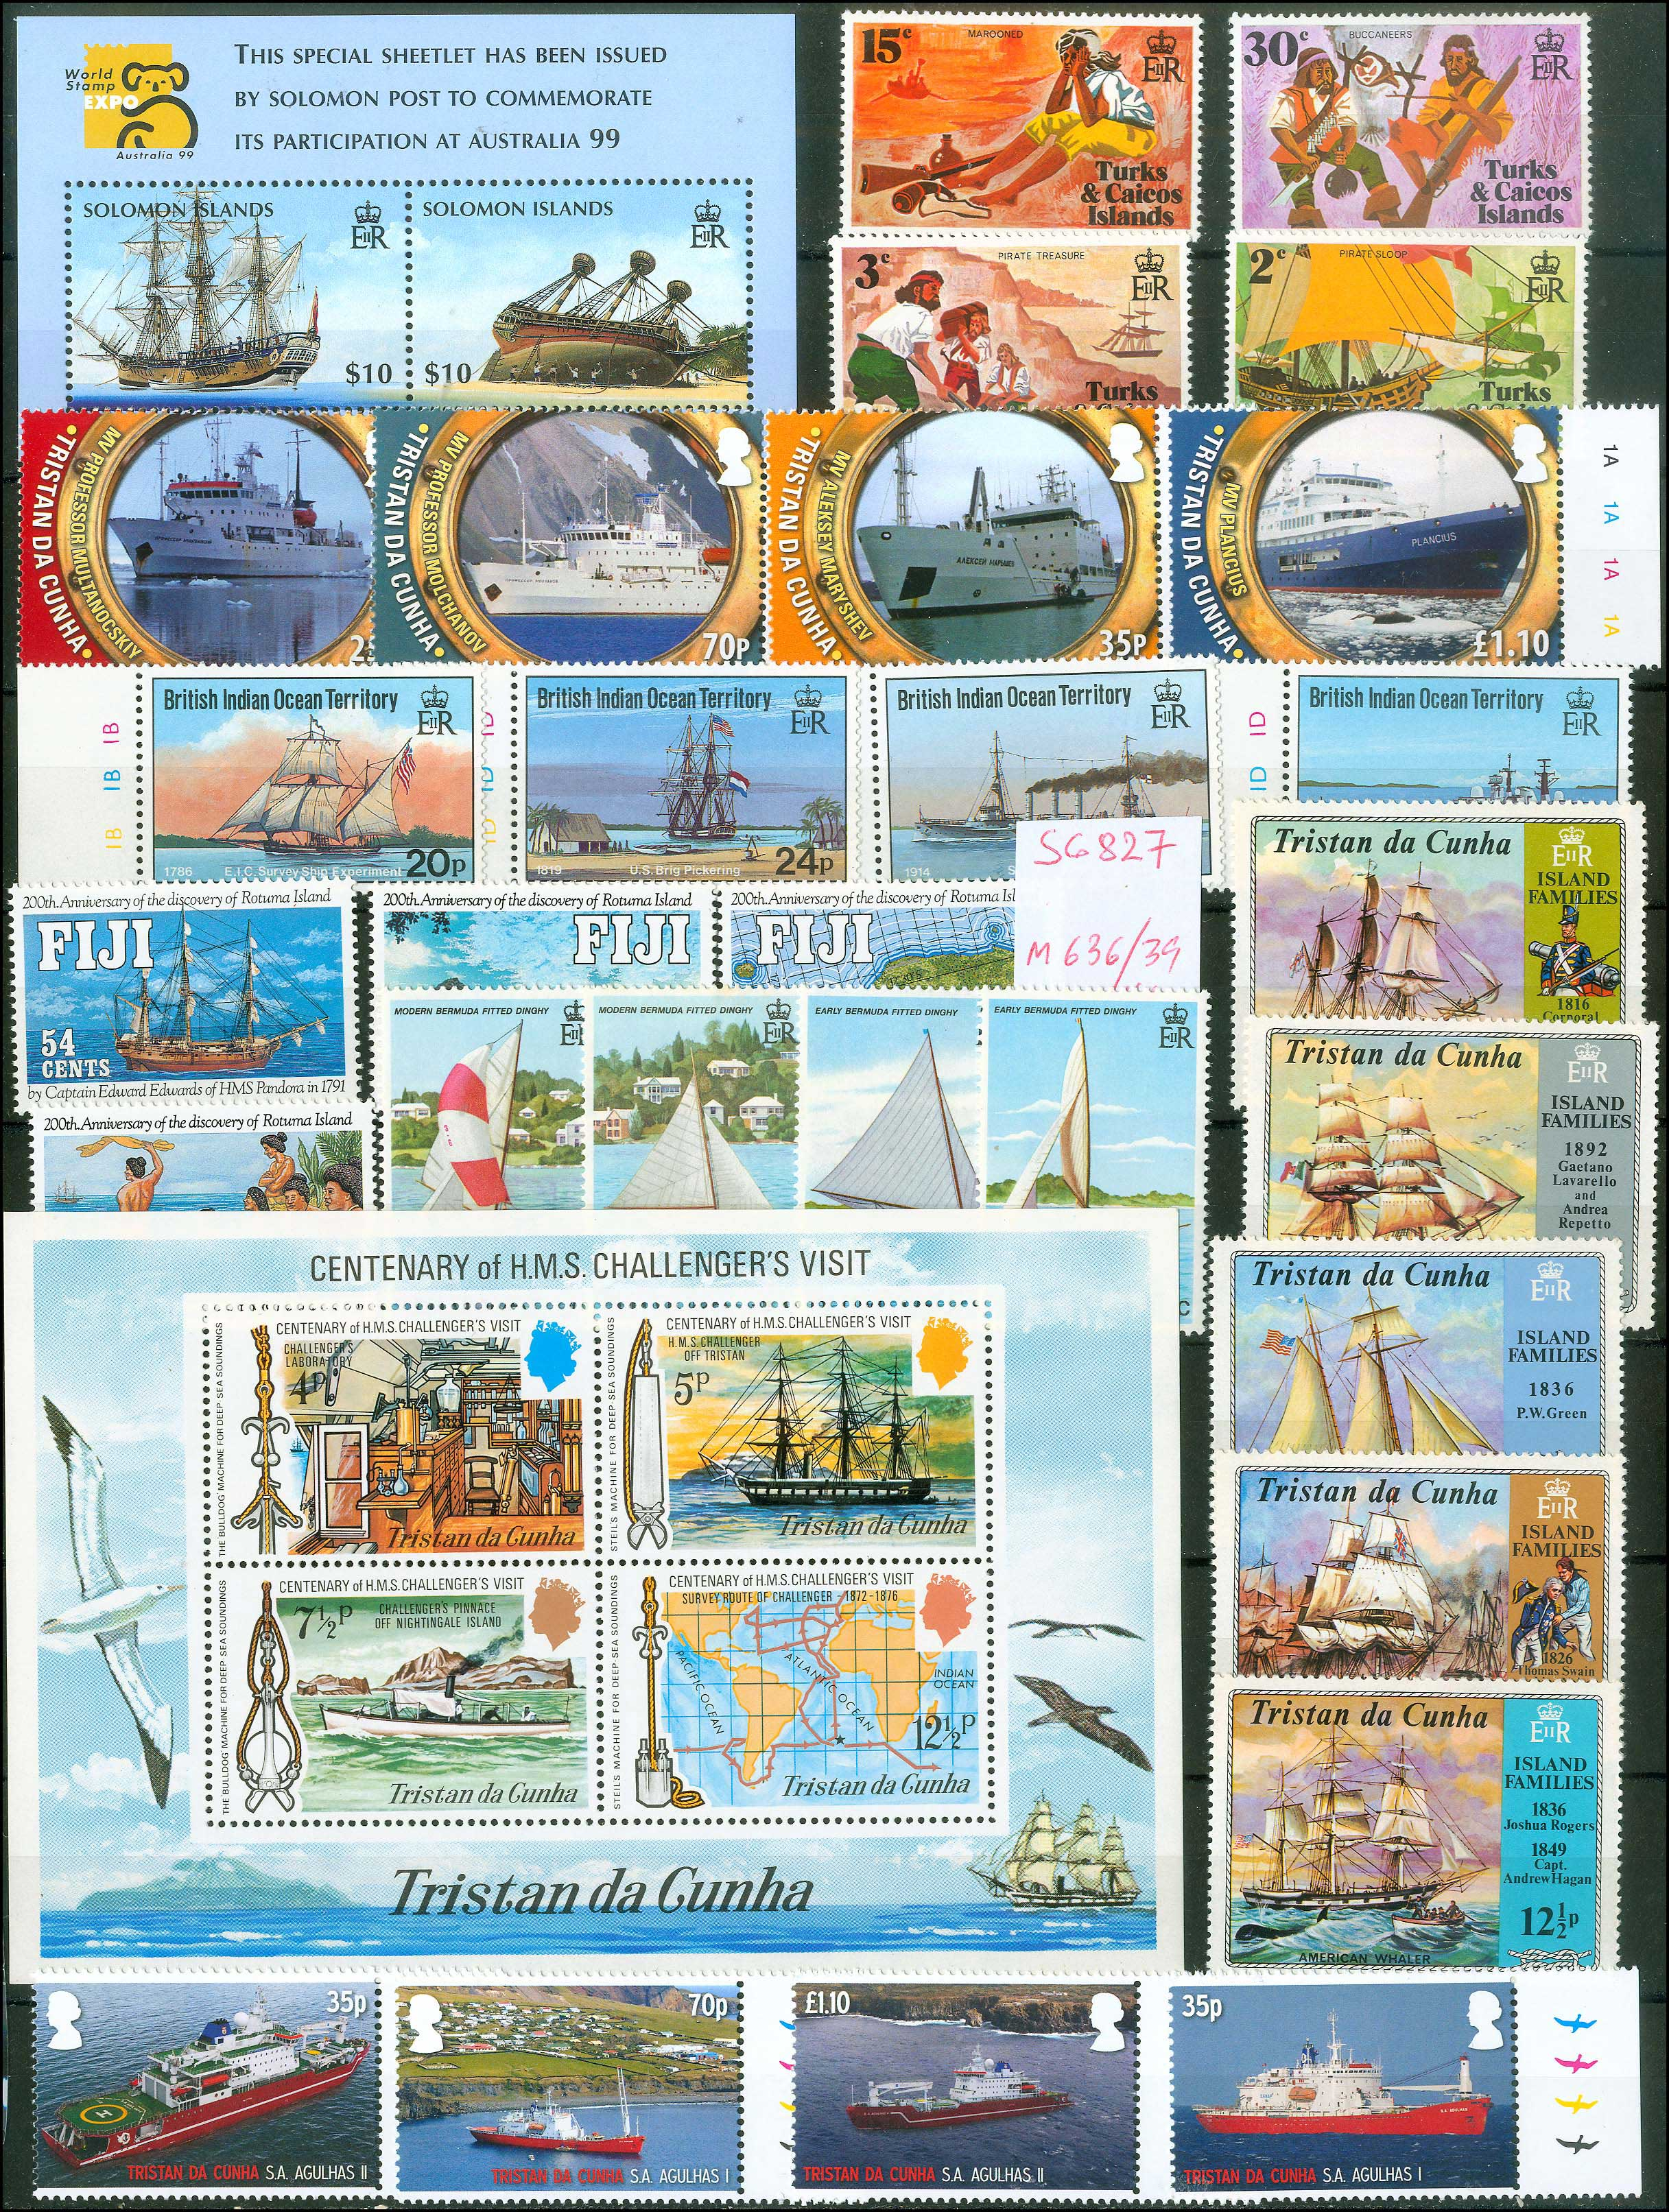 Lot 978 - -  THEMATIC (TOPICAL) PHILATELY Thematic (topical) philately -  A. Karamitsos Public Auction 668 General Philatelic Auction